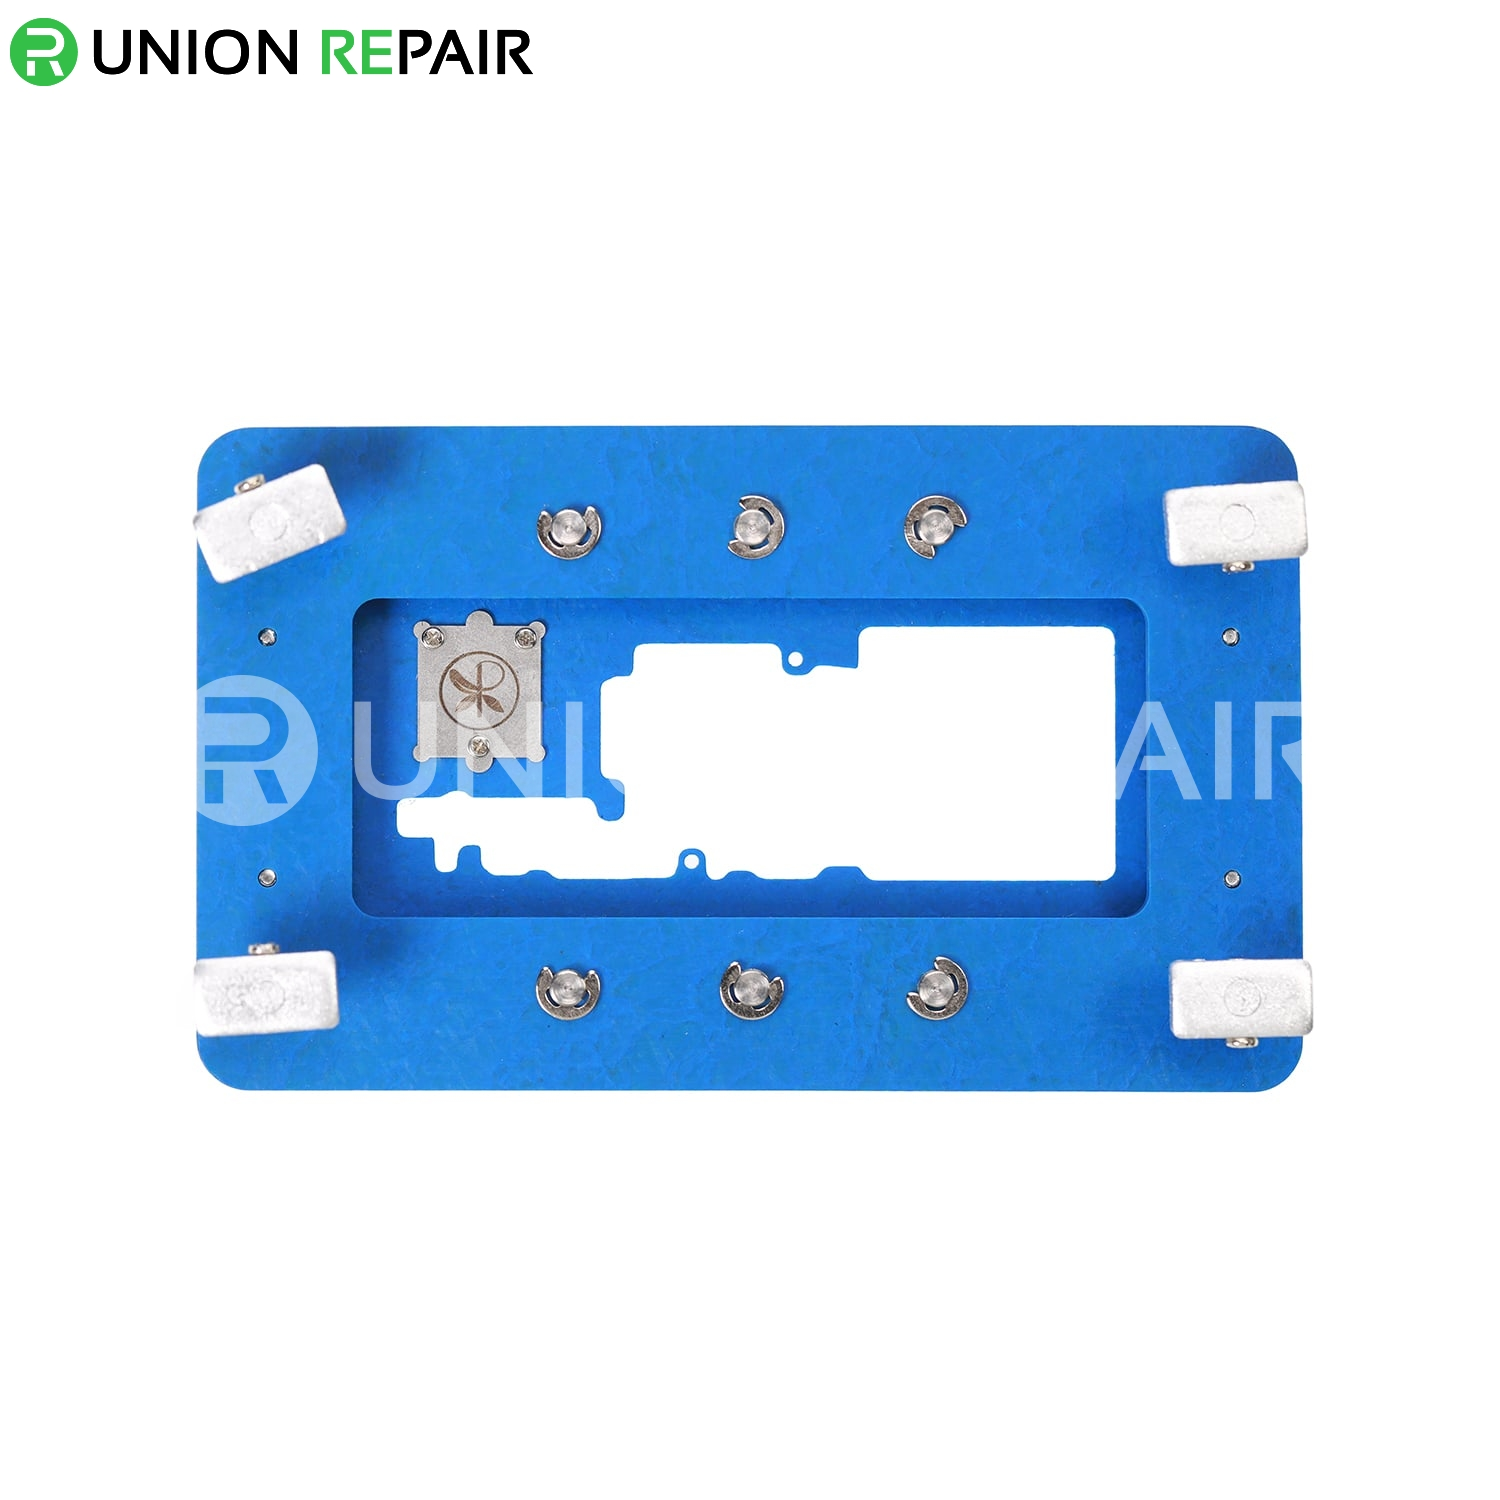 MiJing CH5 Intelligent Mainboard Layered Welding Platform for iPhone X/XS/XSMAX